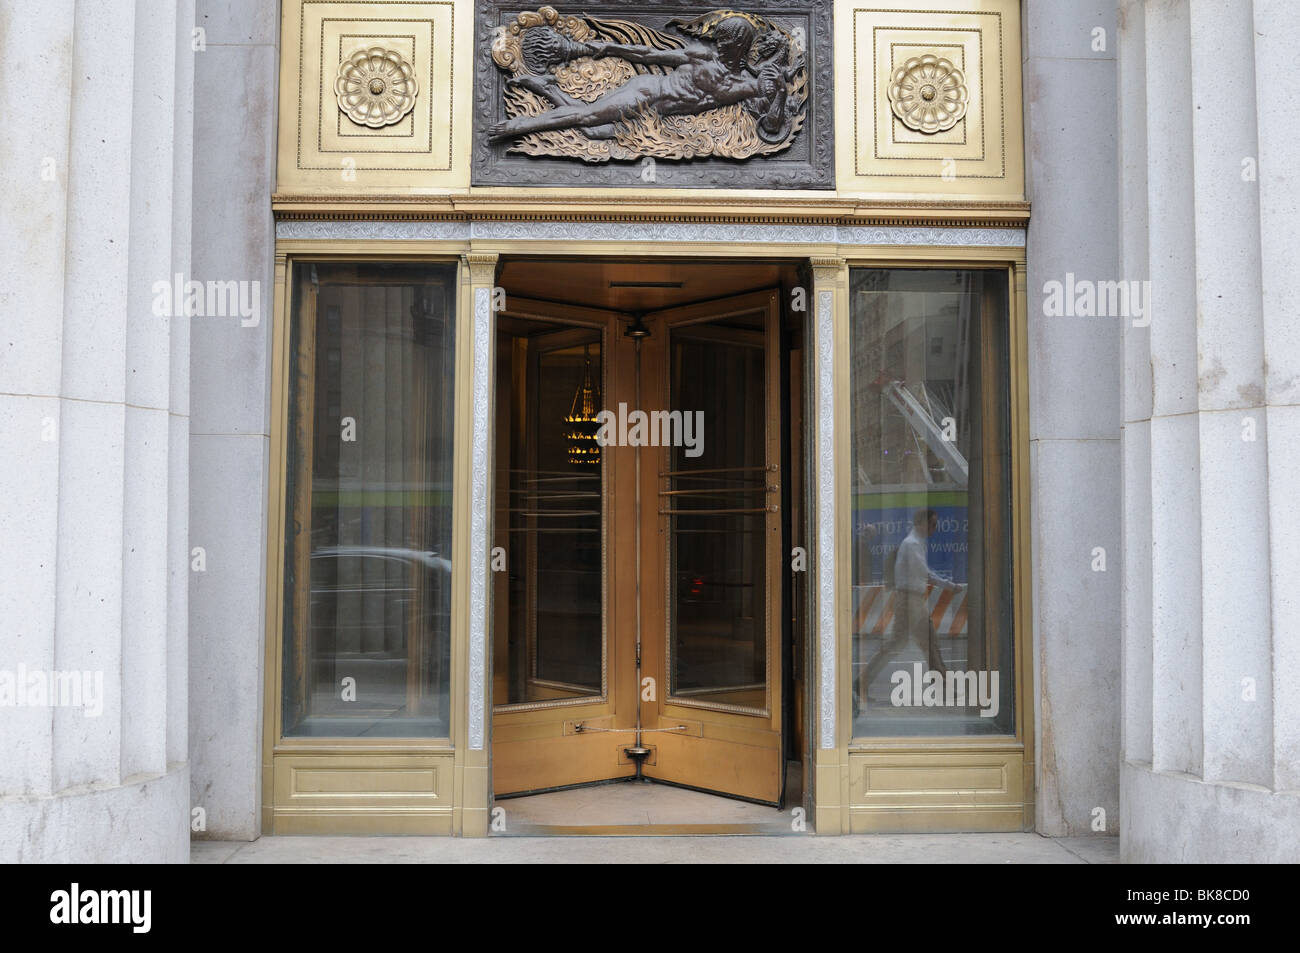 A revolving door at 195 Broadway in Manhattan the headquarters of the American Telephone and Telegraph Co. from 1916 to 1983. & A revolving door at 195 Broadway in Manhattan the headquarters of ...